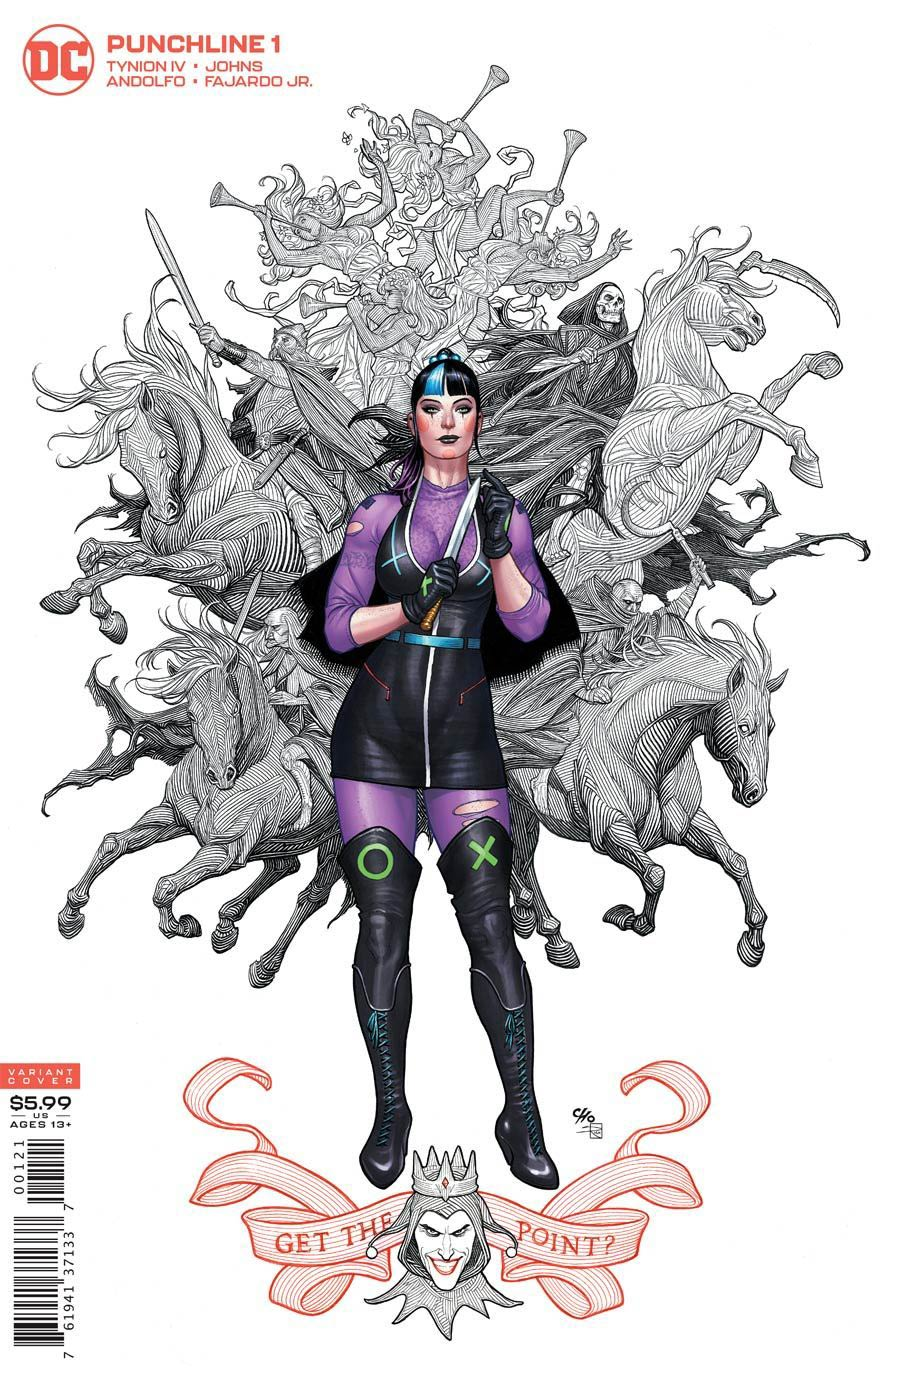 Punchline Special One Shot Cover I DF Frank Cho Cover Signed By James Tynion IV